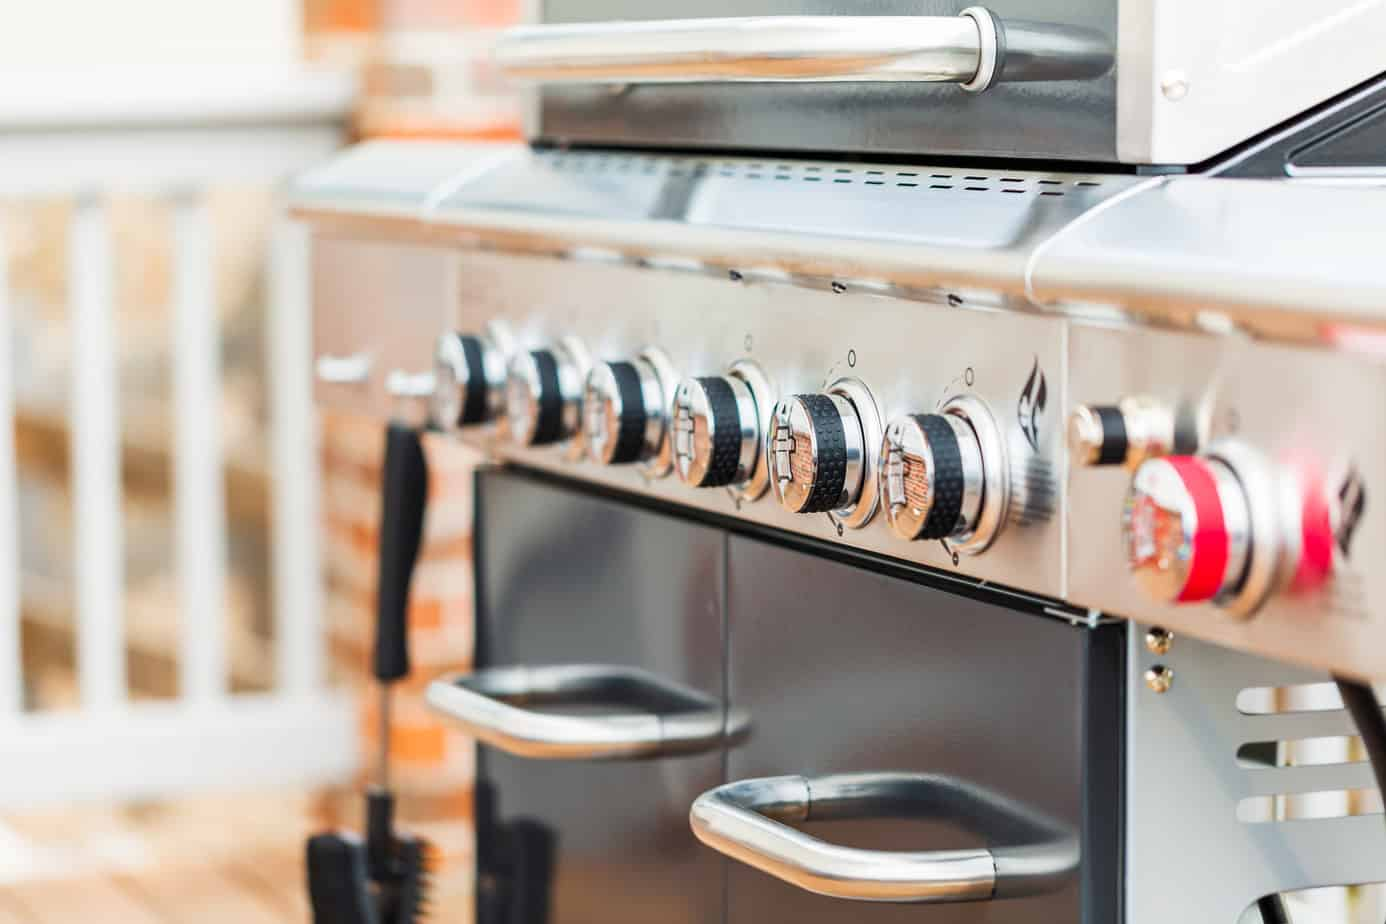 The Best Gas Grills - A Detailed 2019 Buyer's Guide